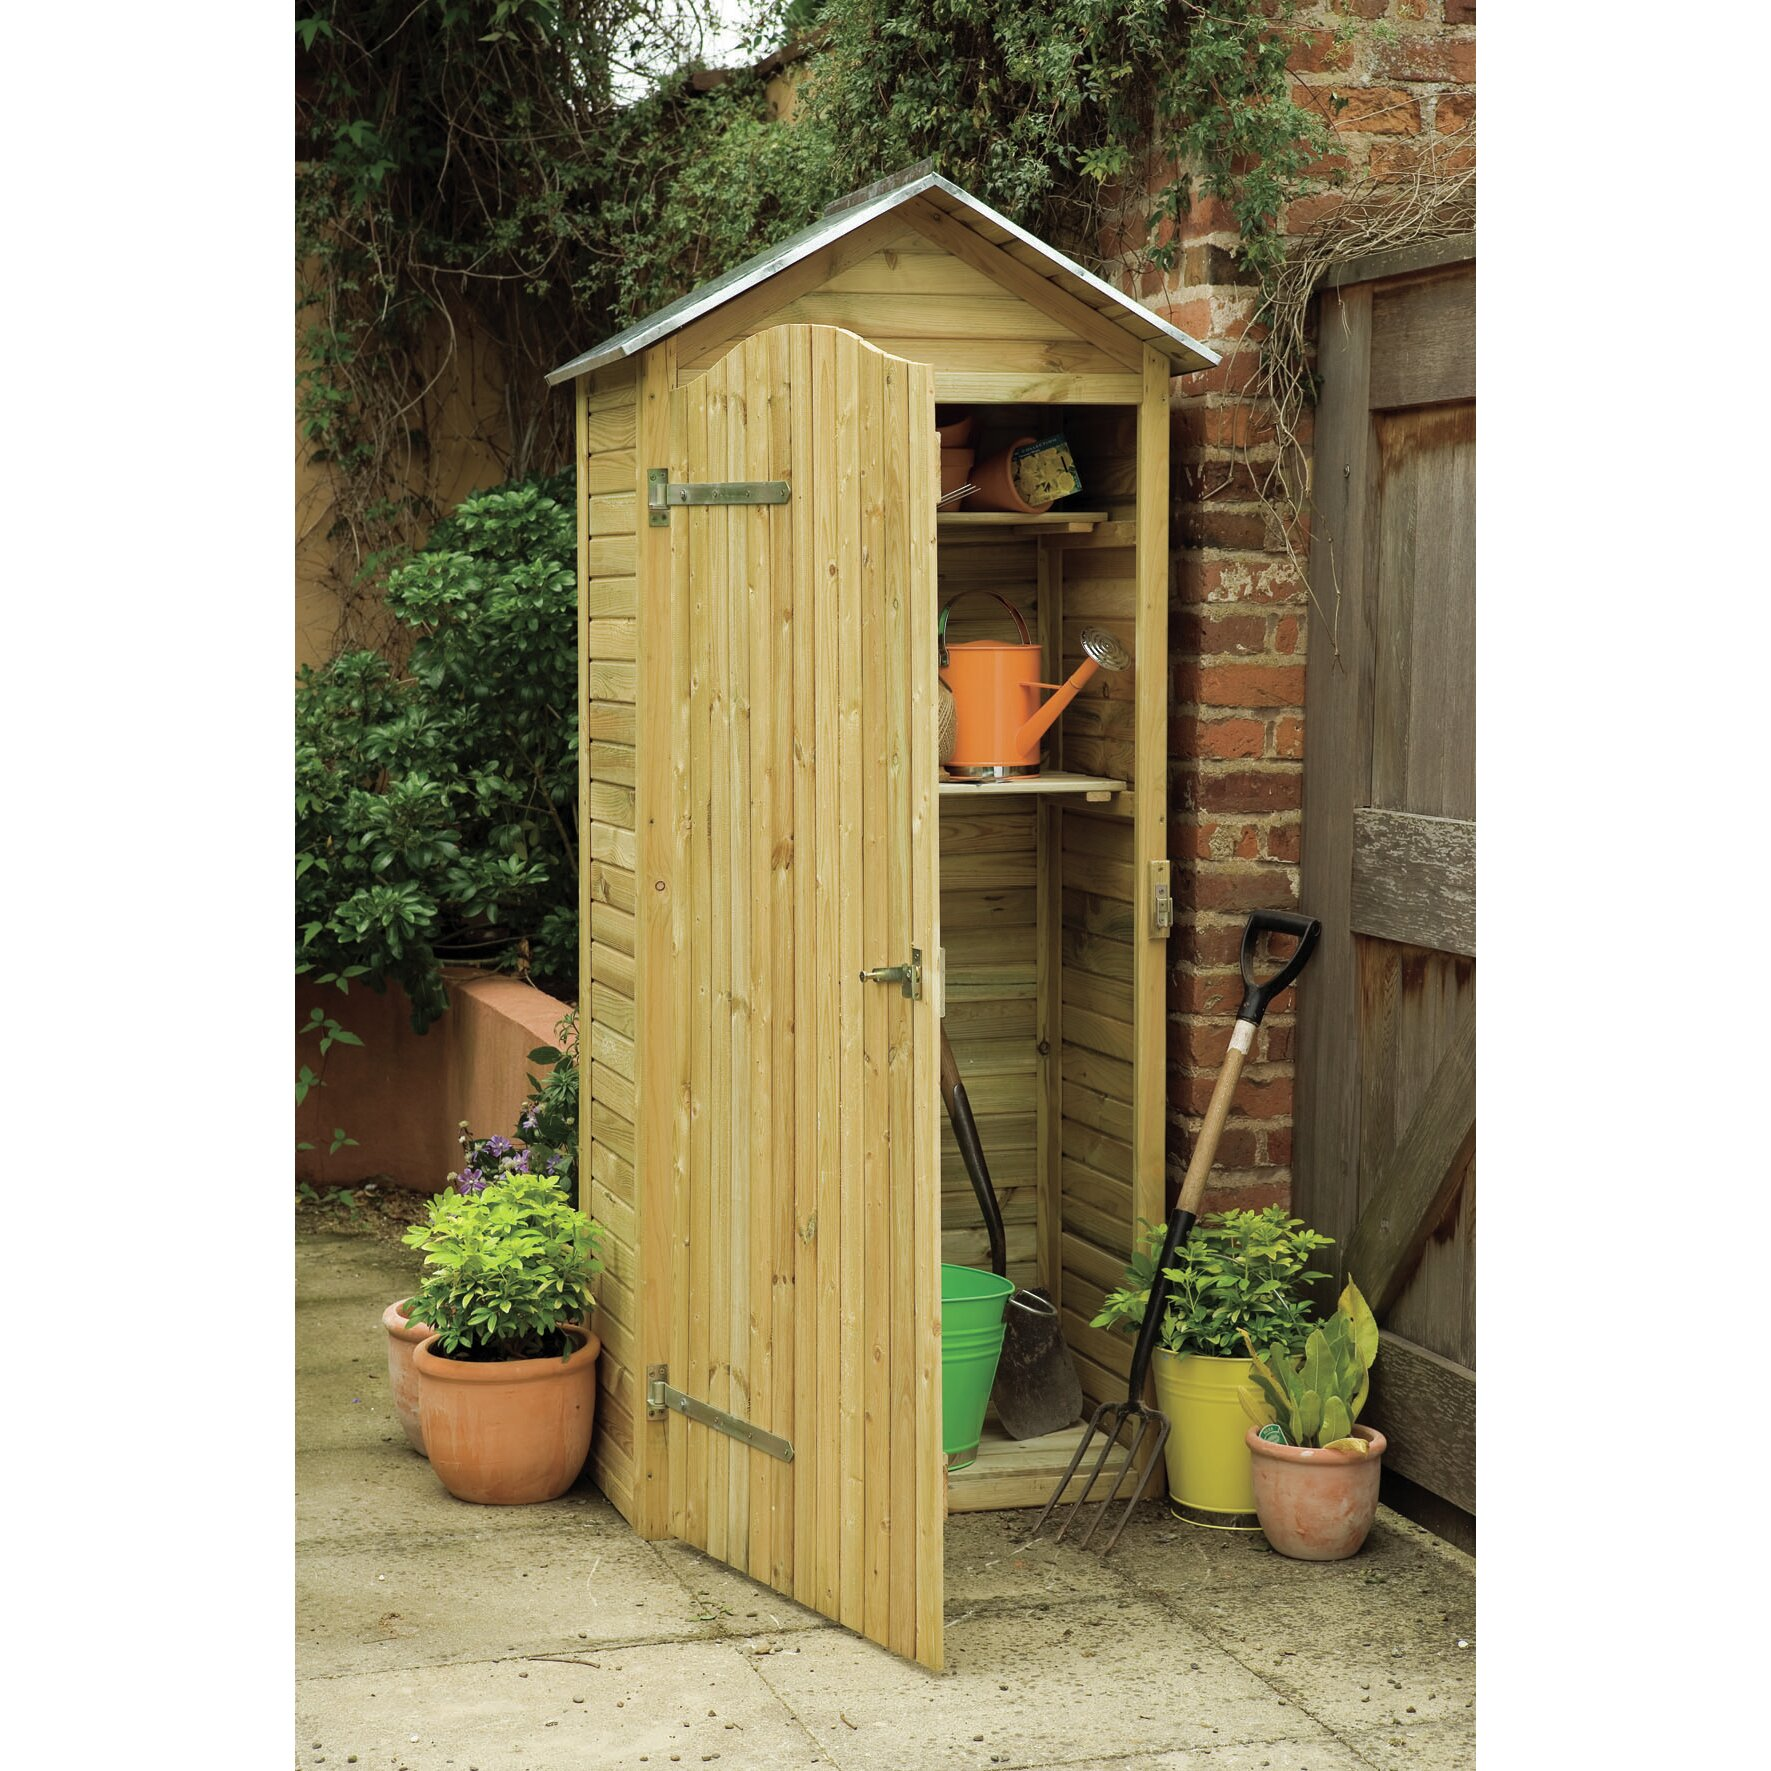 Forest garden 3 x 2 wooden tool shed reviews for Garden shed 2 x 2